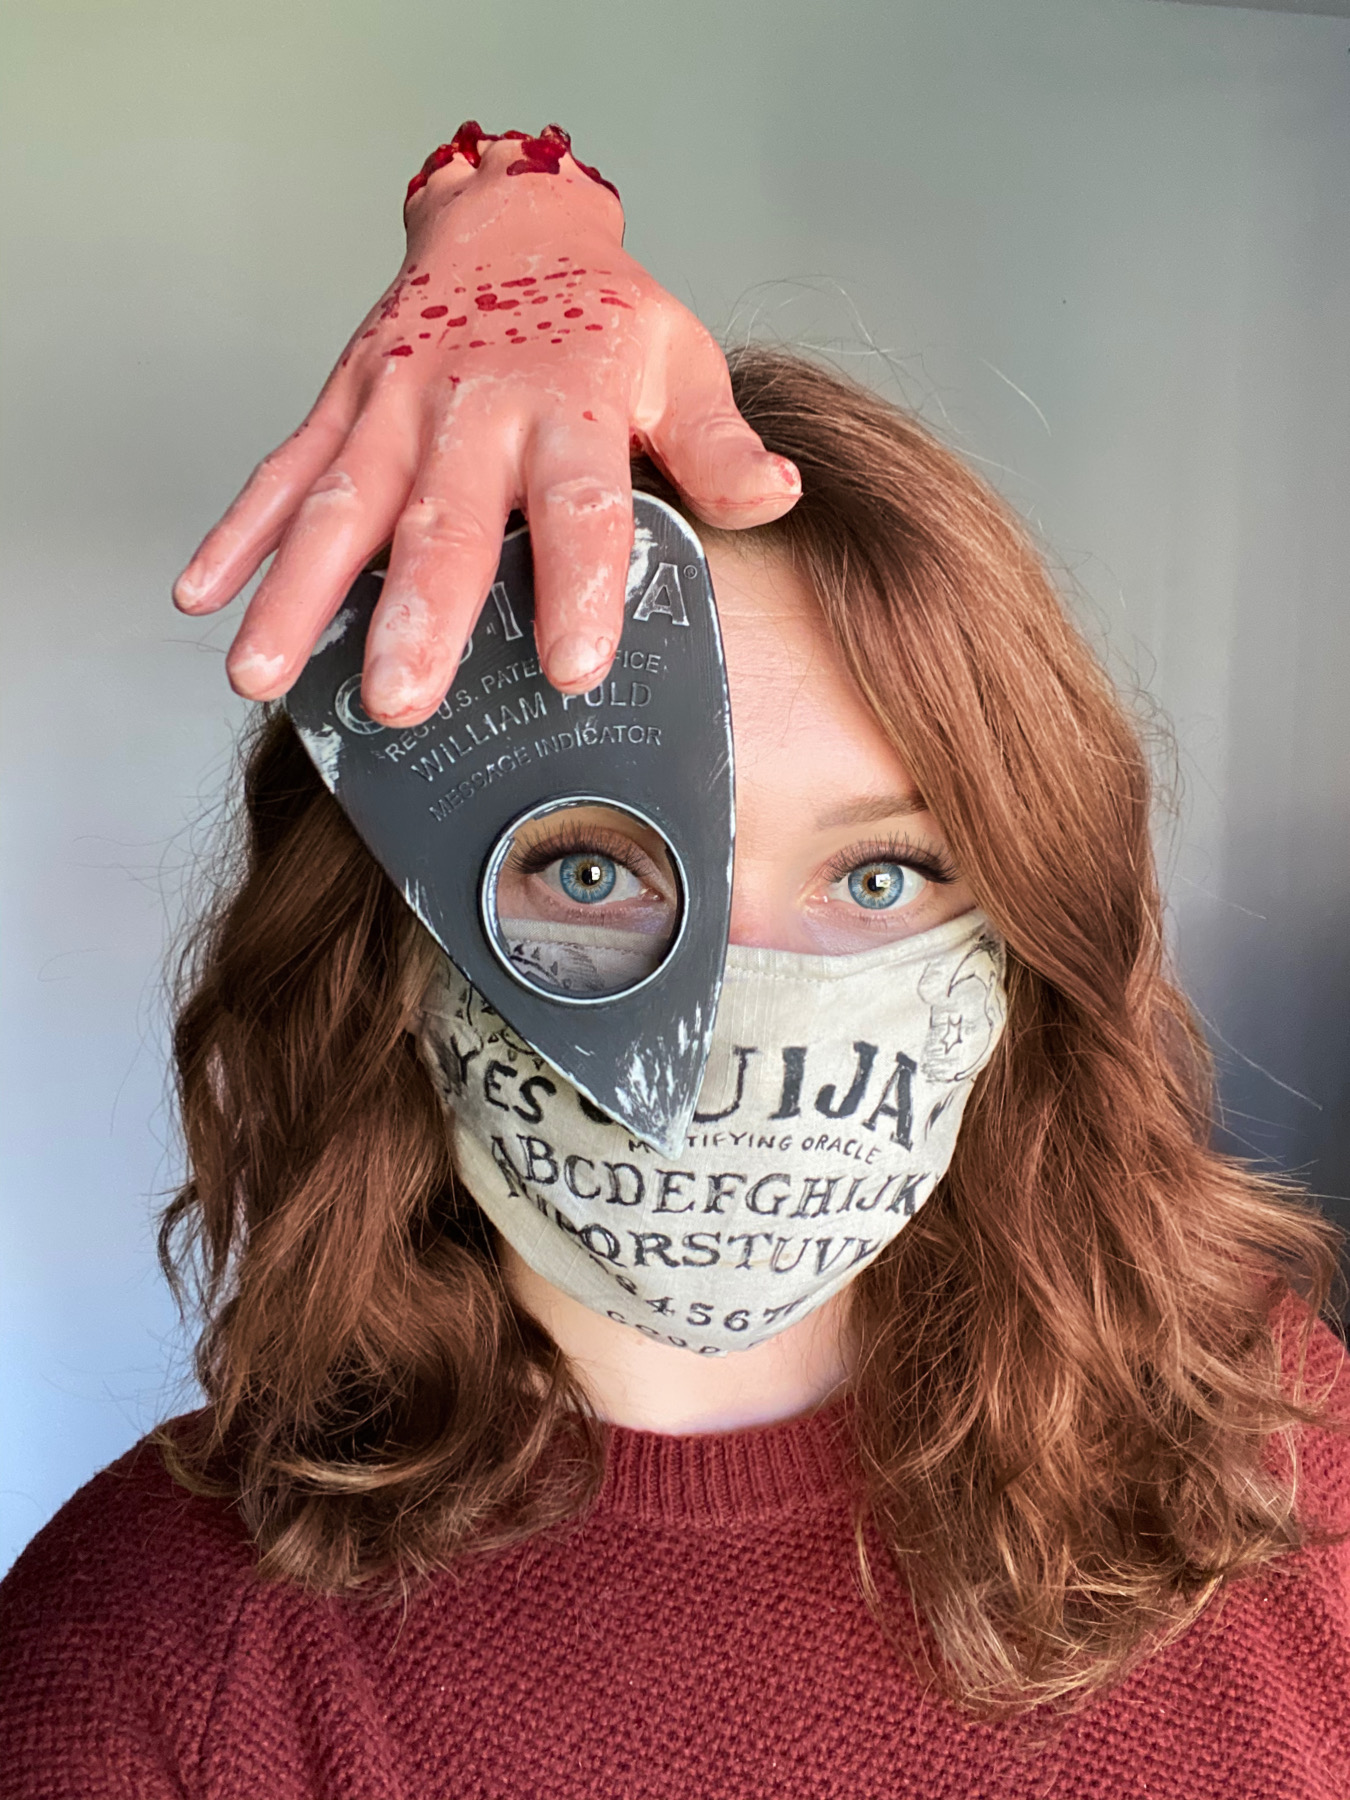 A costume for everyone in 2020: Ouija wear a mask?!?